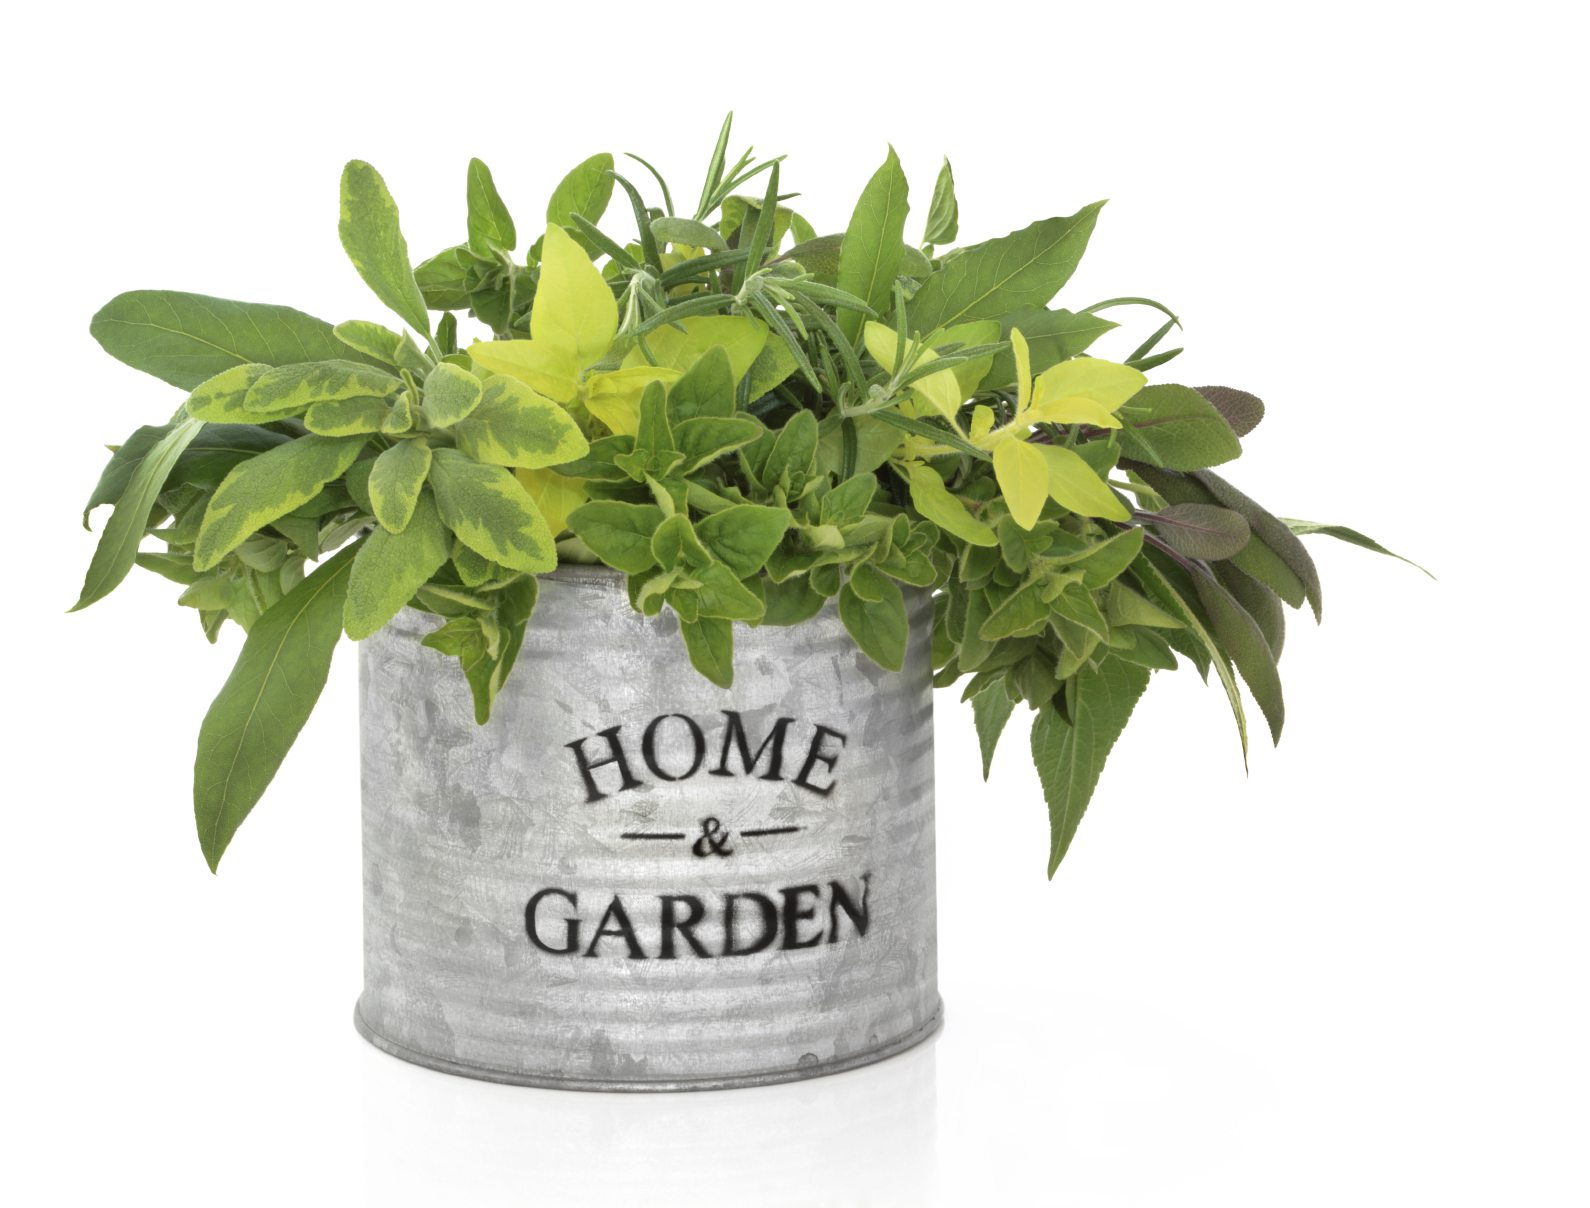 Planting In Galvanized Steel Containers Using Galvanized Containers For Gardening